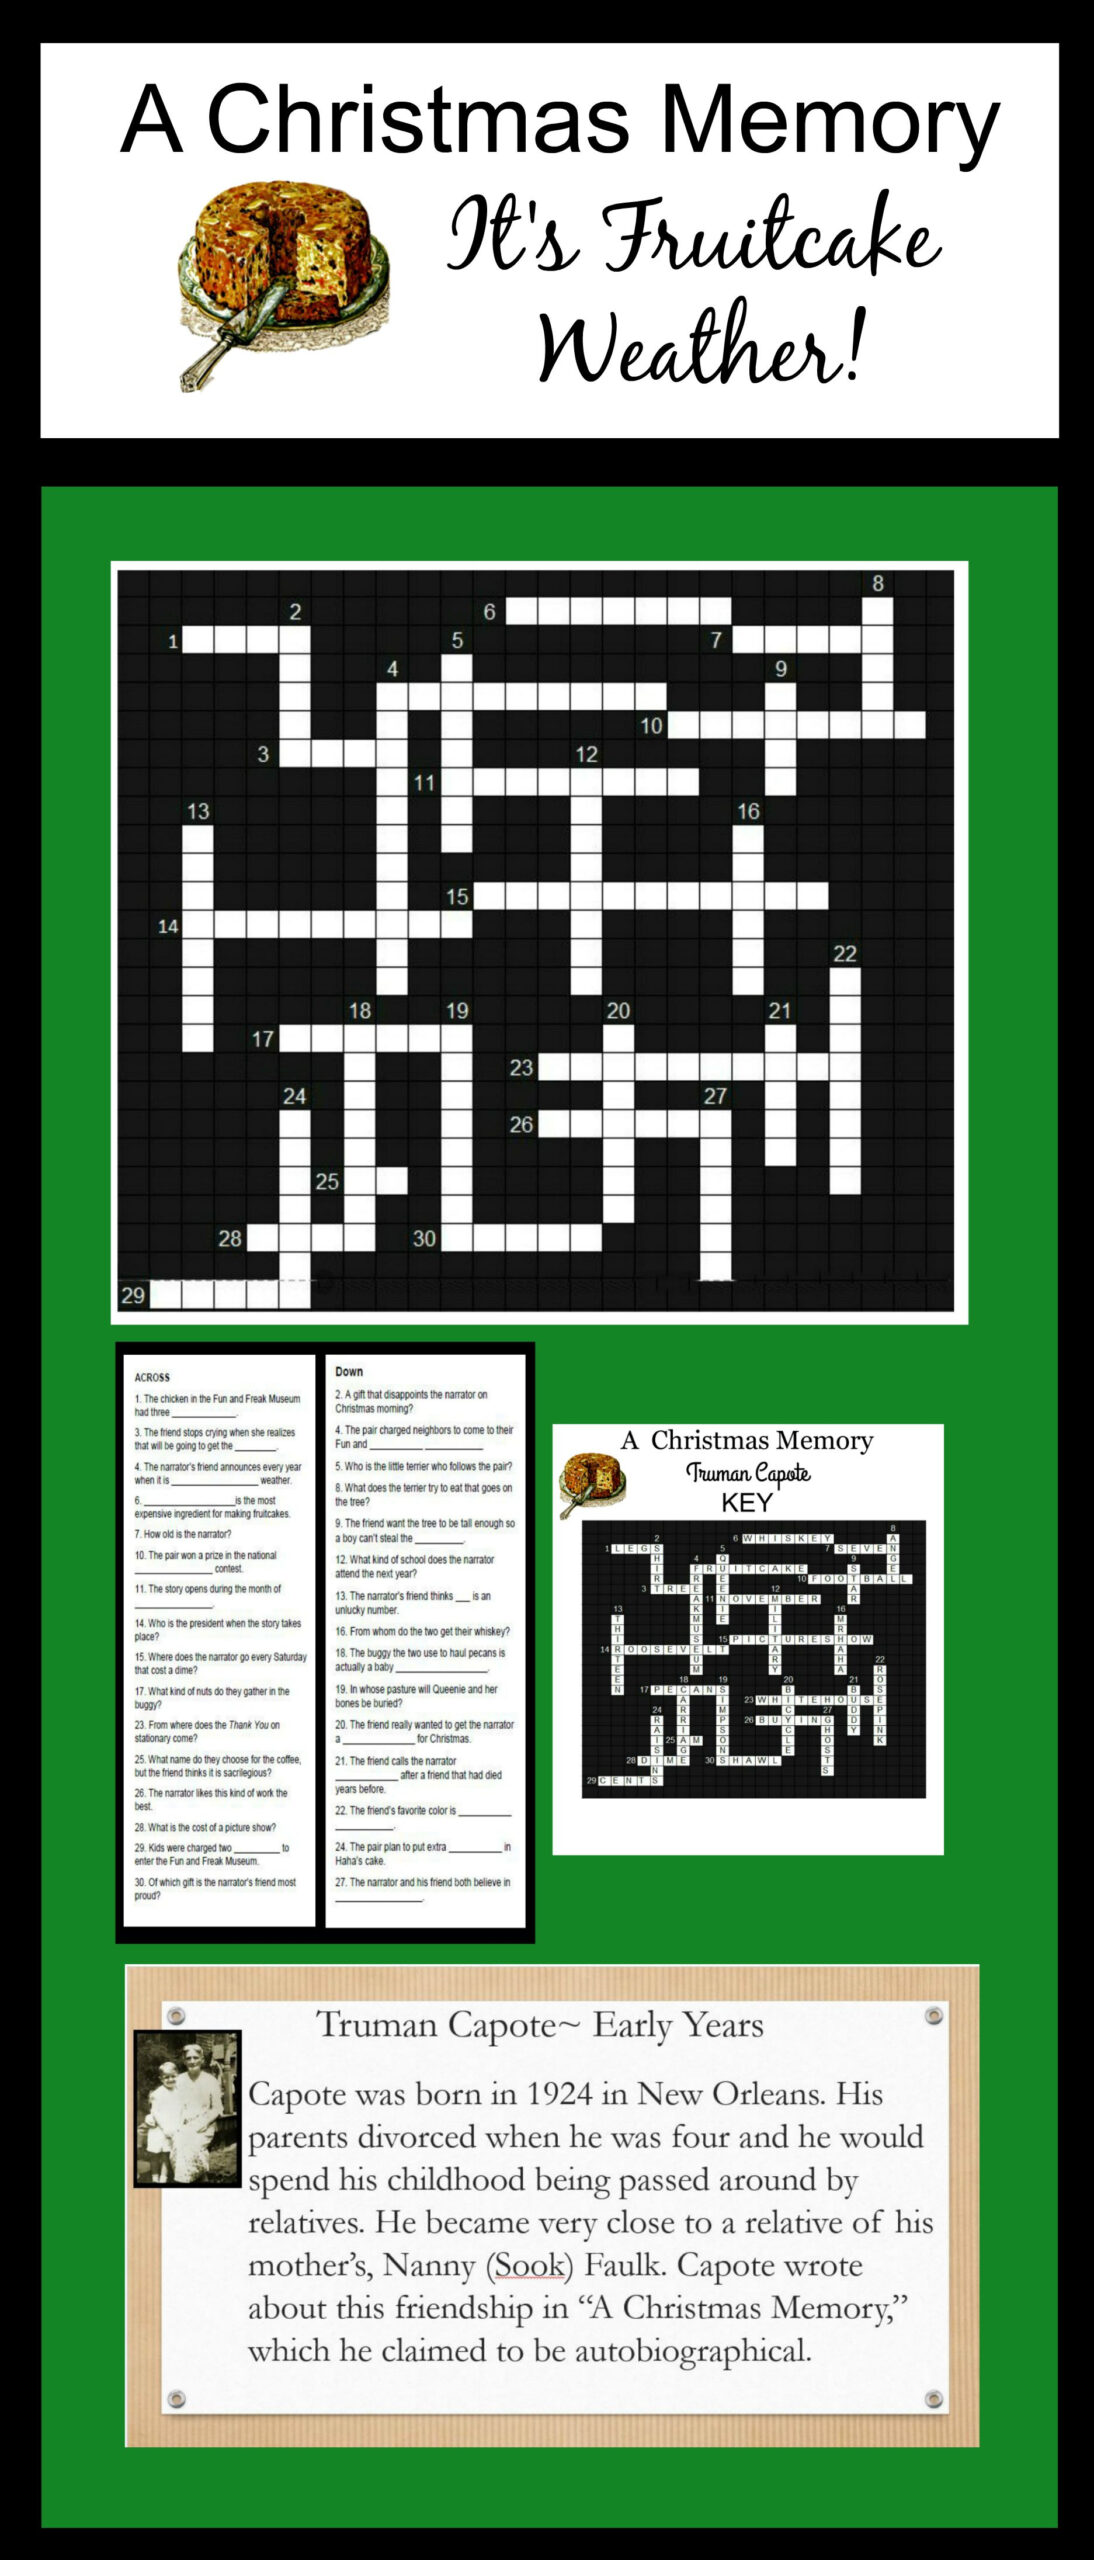 A Christmas Memorytruman Capote Crossword With Key